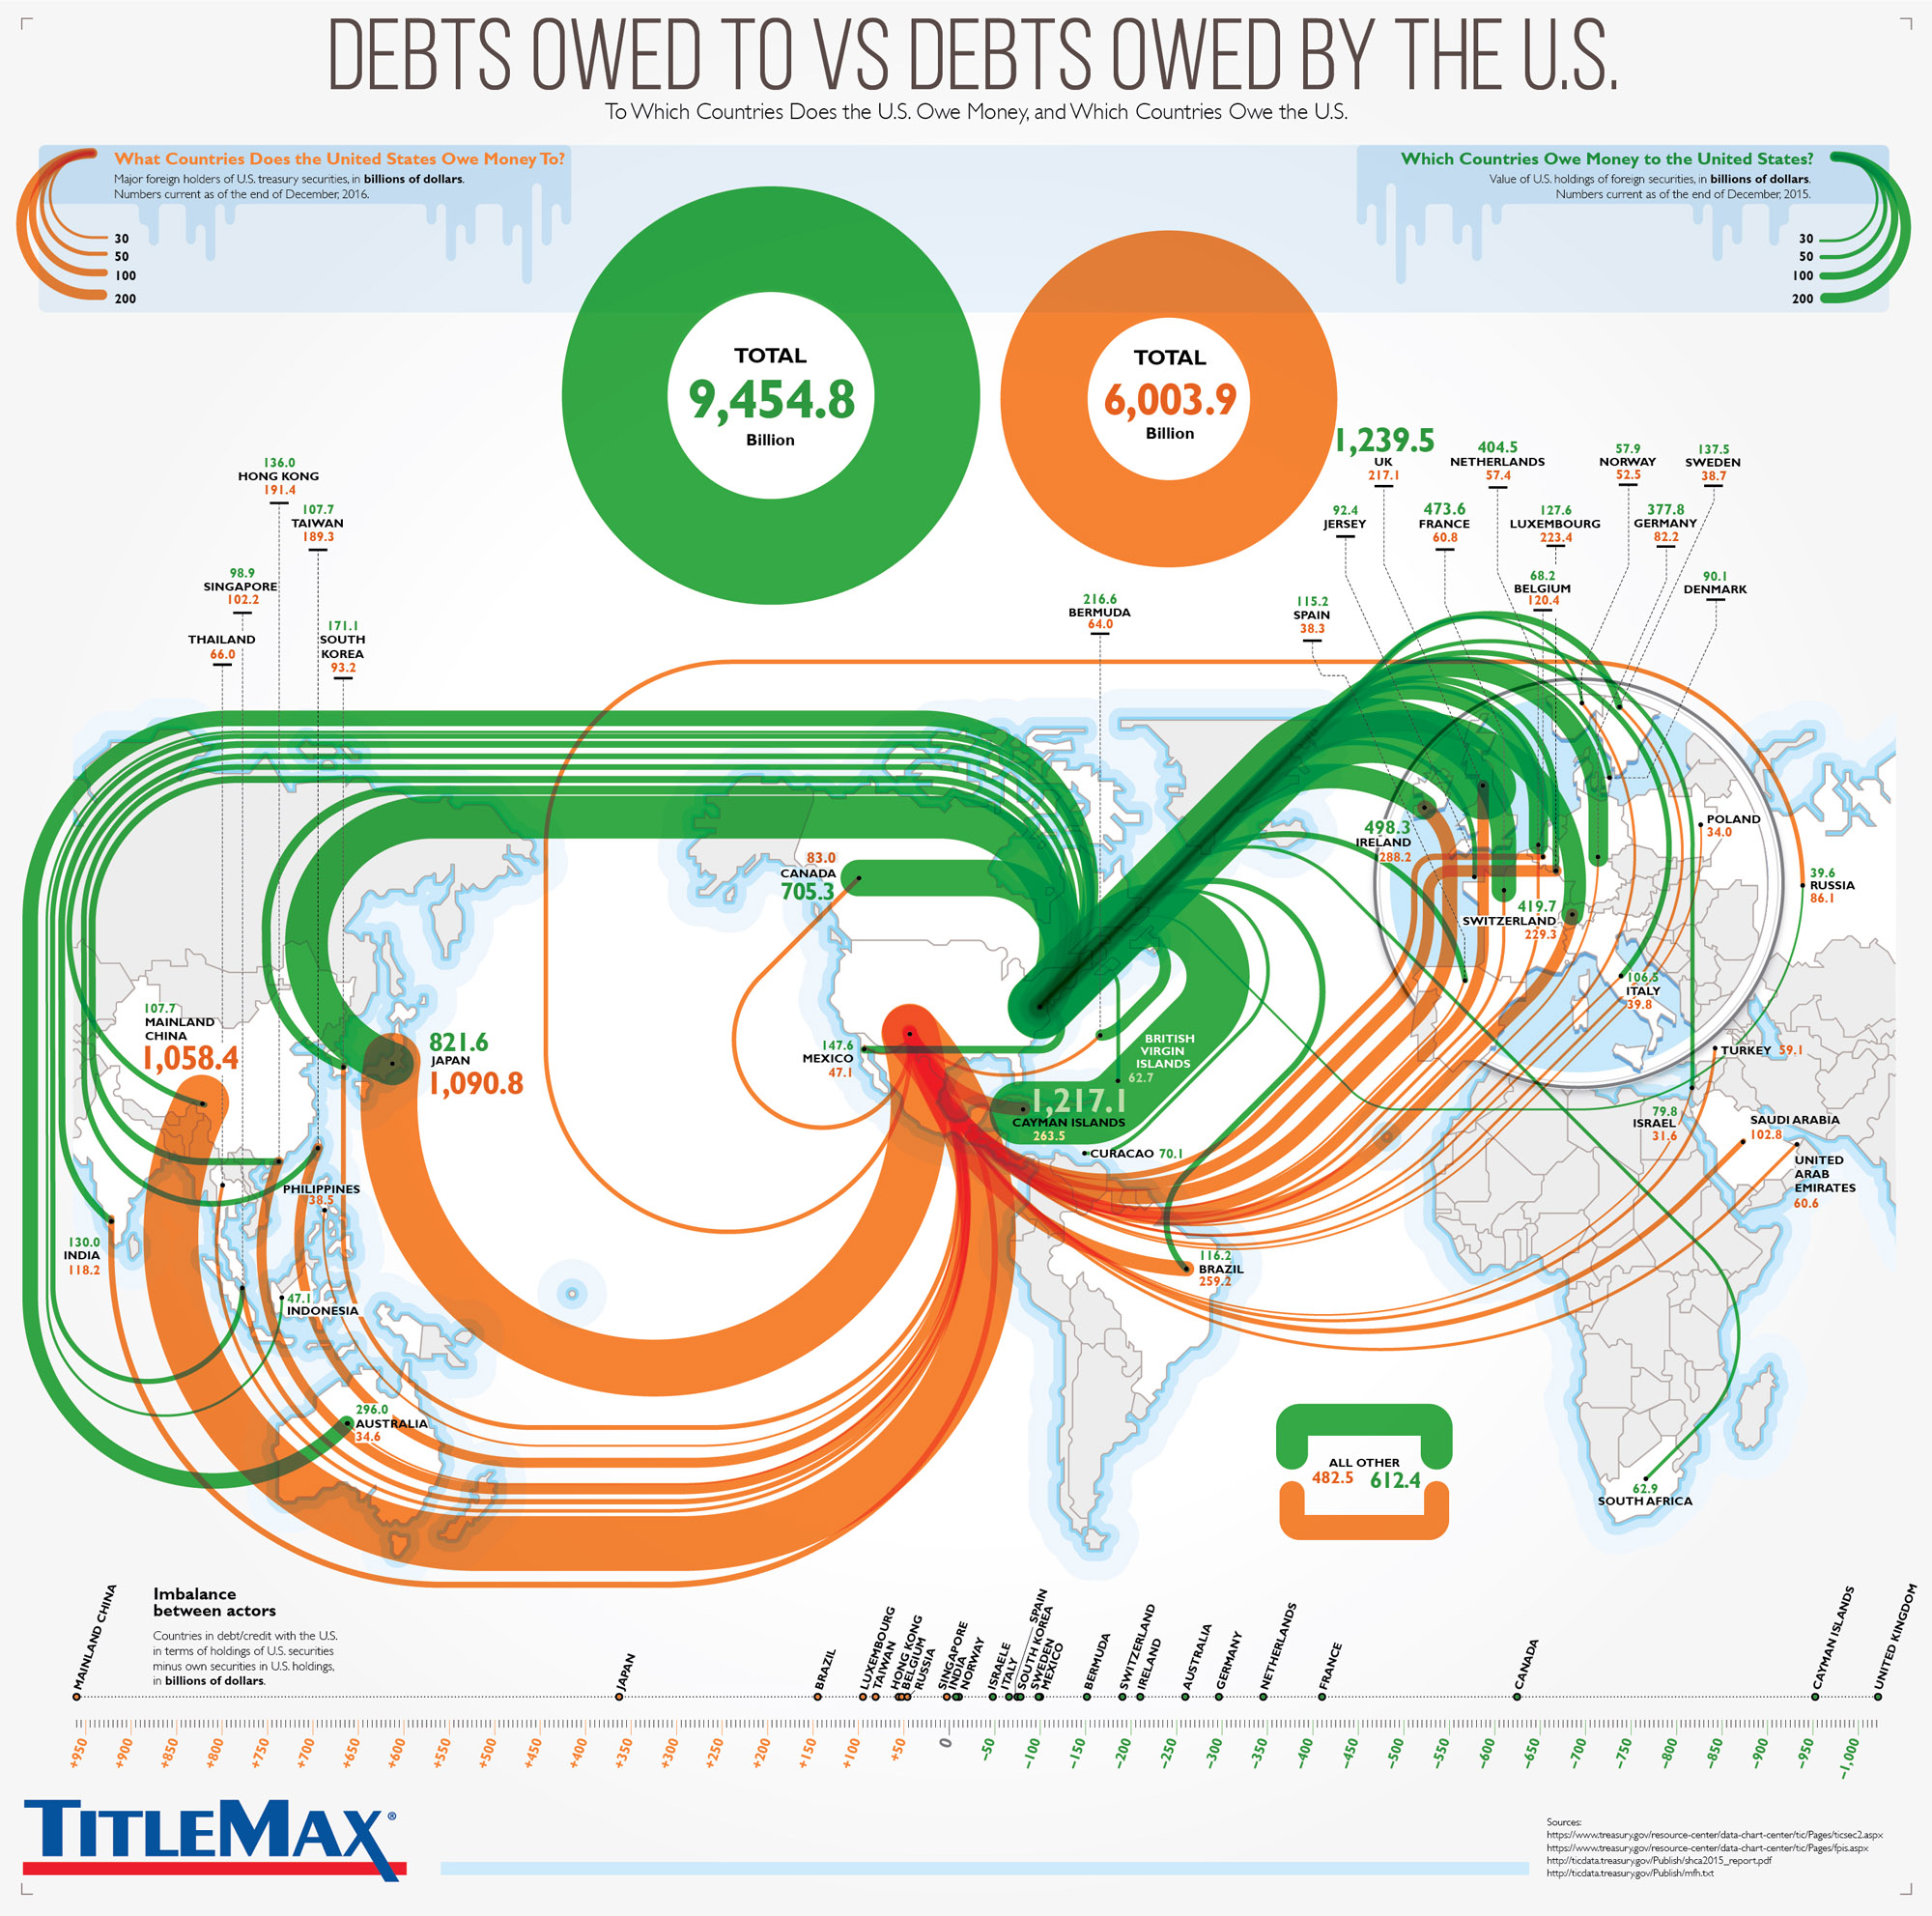 Debts Owed By the US Government VS Debts Owed To It